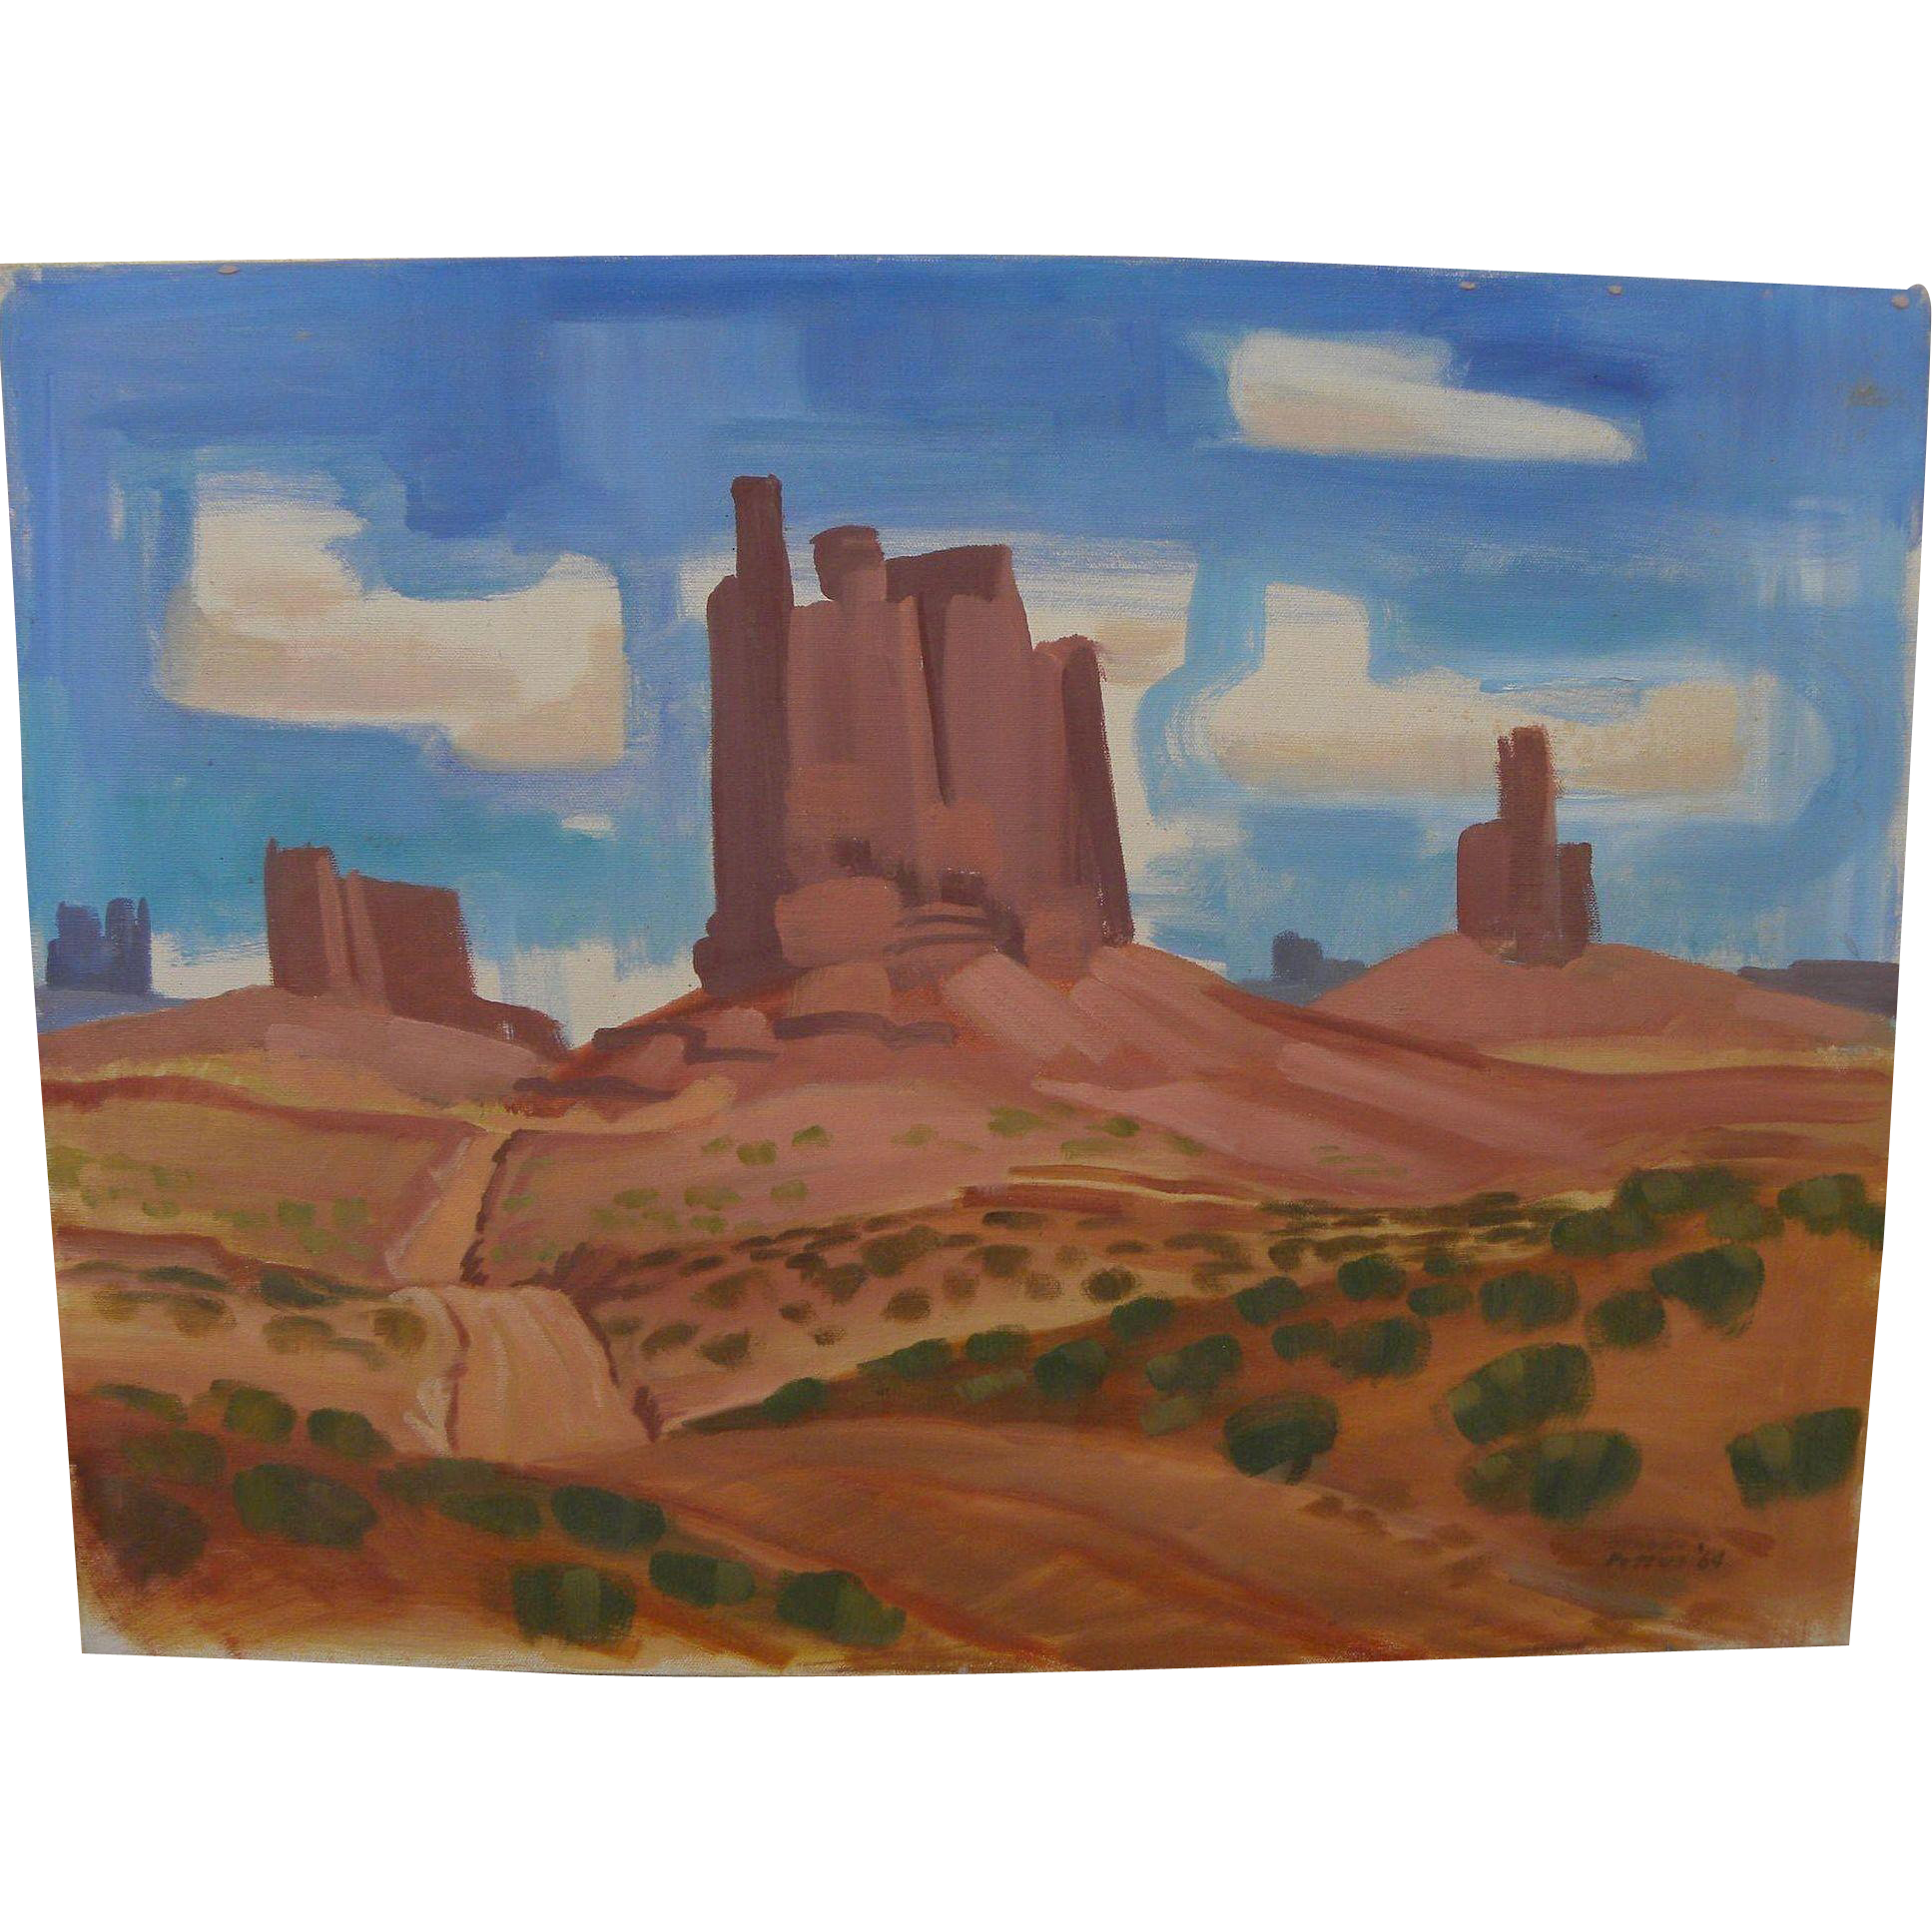 BROOKS PETTUS (1918-2003) Southwest painting Monument Valley Arizona dated 1964 by noted artist